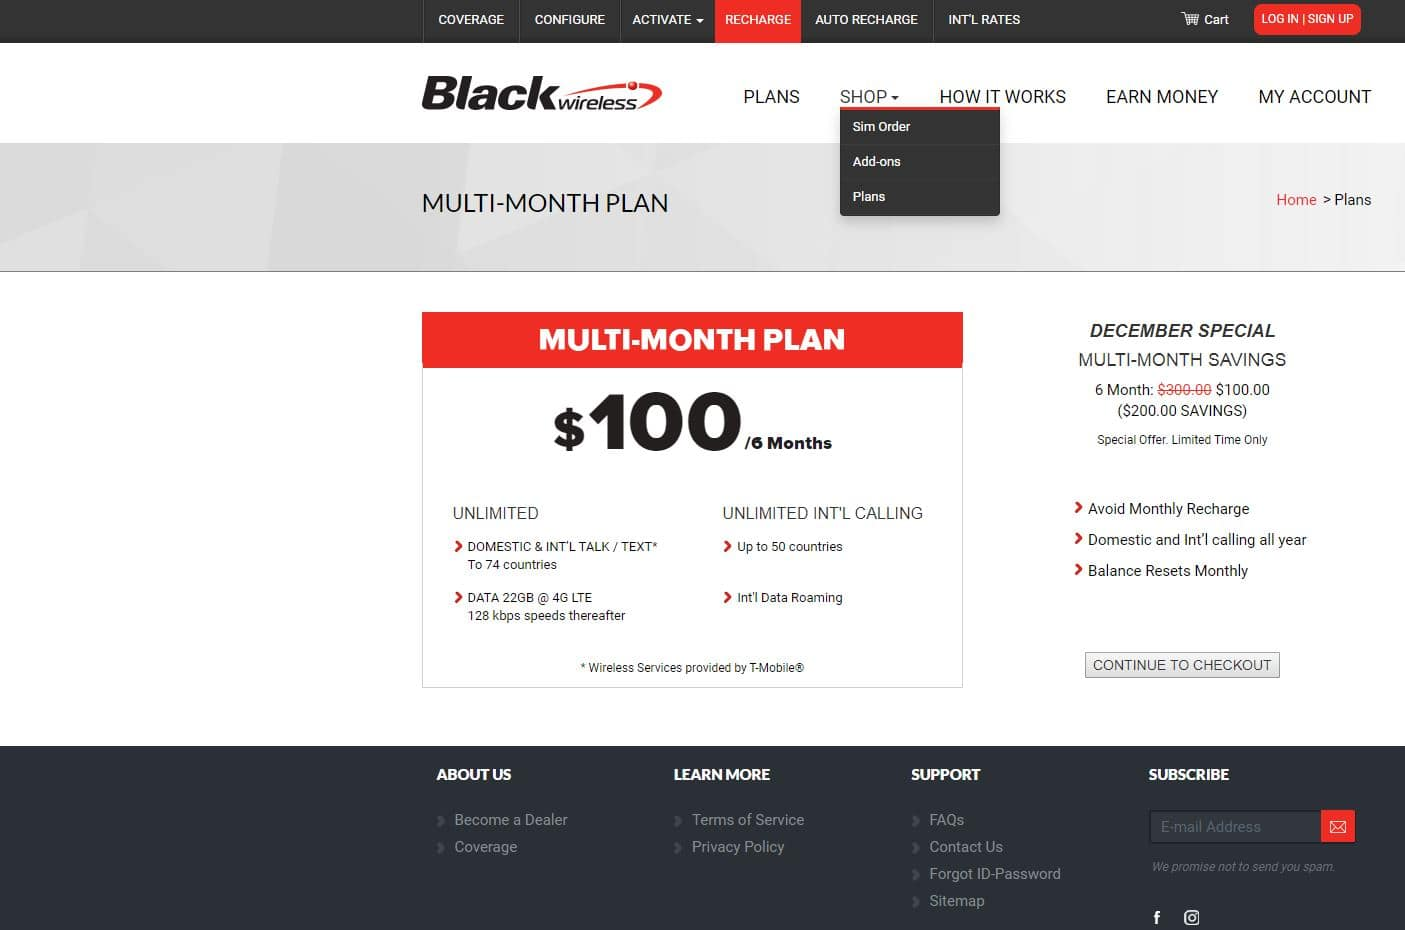 Black wireless, 6 months plan - Unlimited talk/text/data, 22 GB LTE data per month for $100